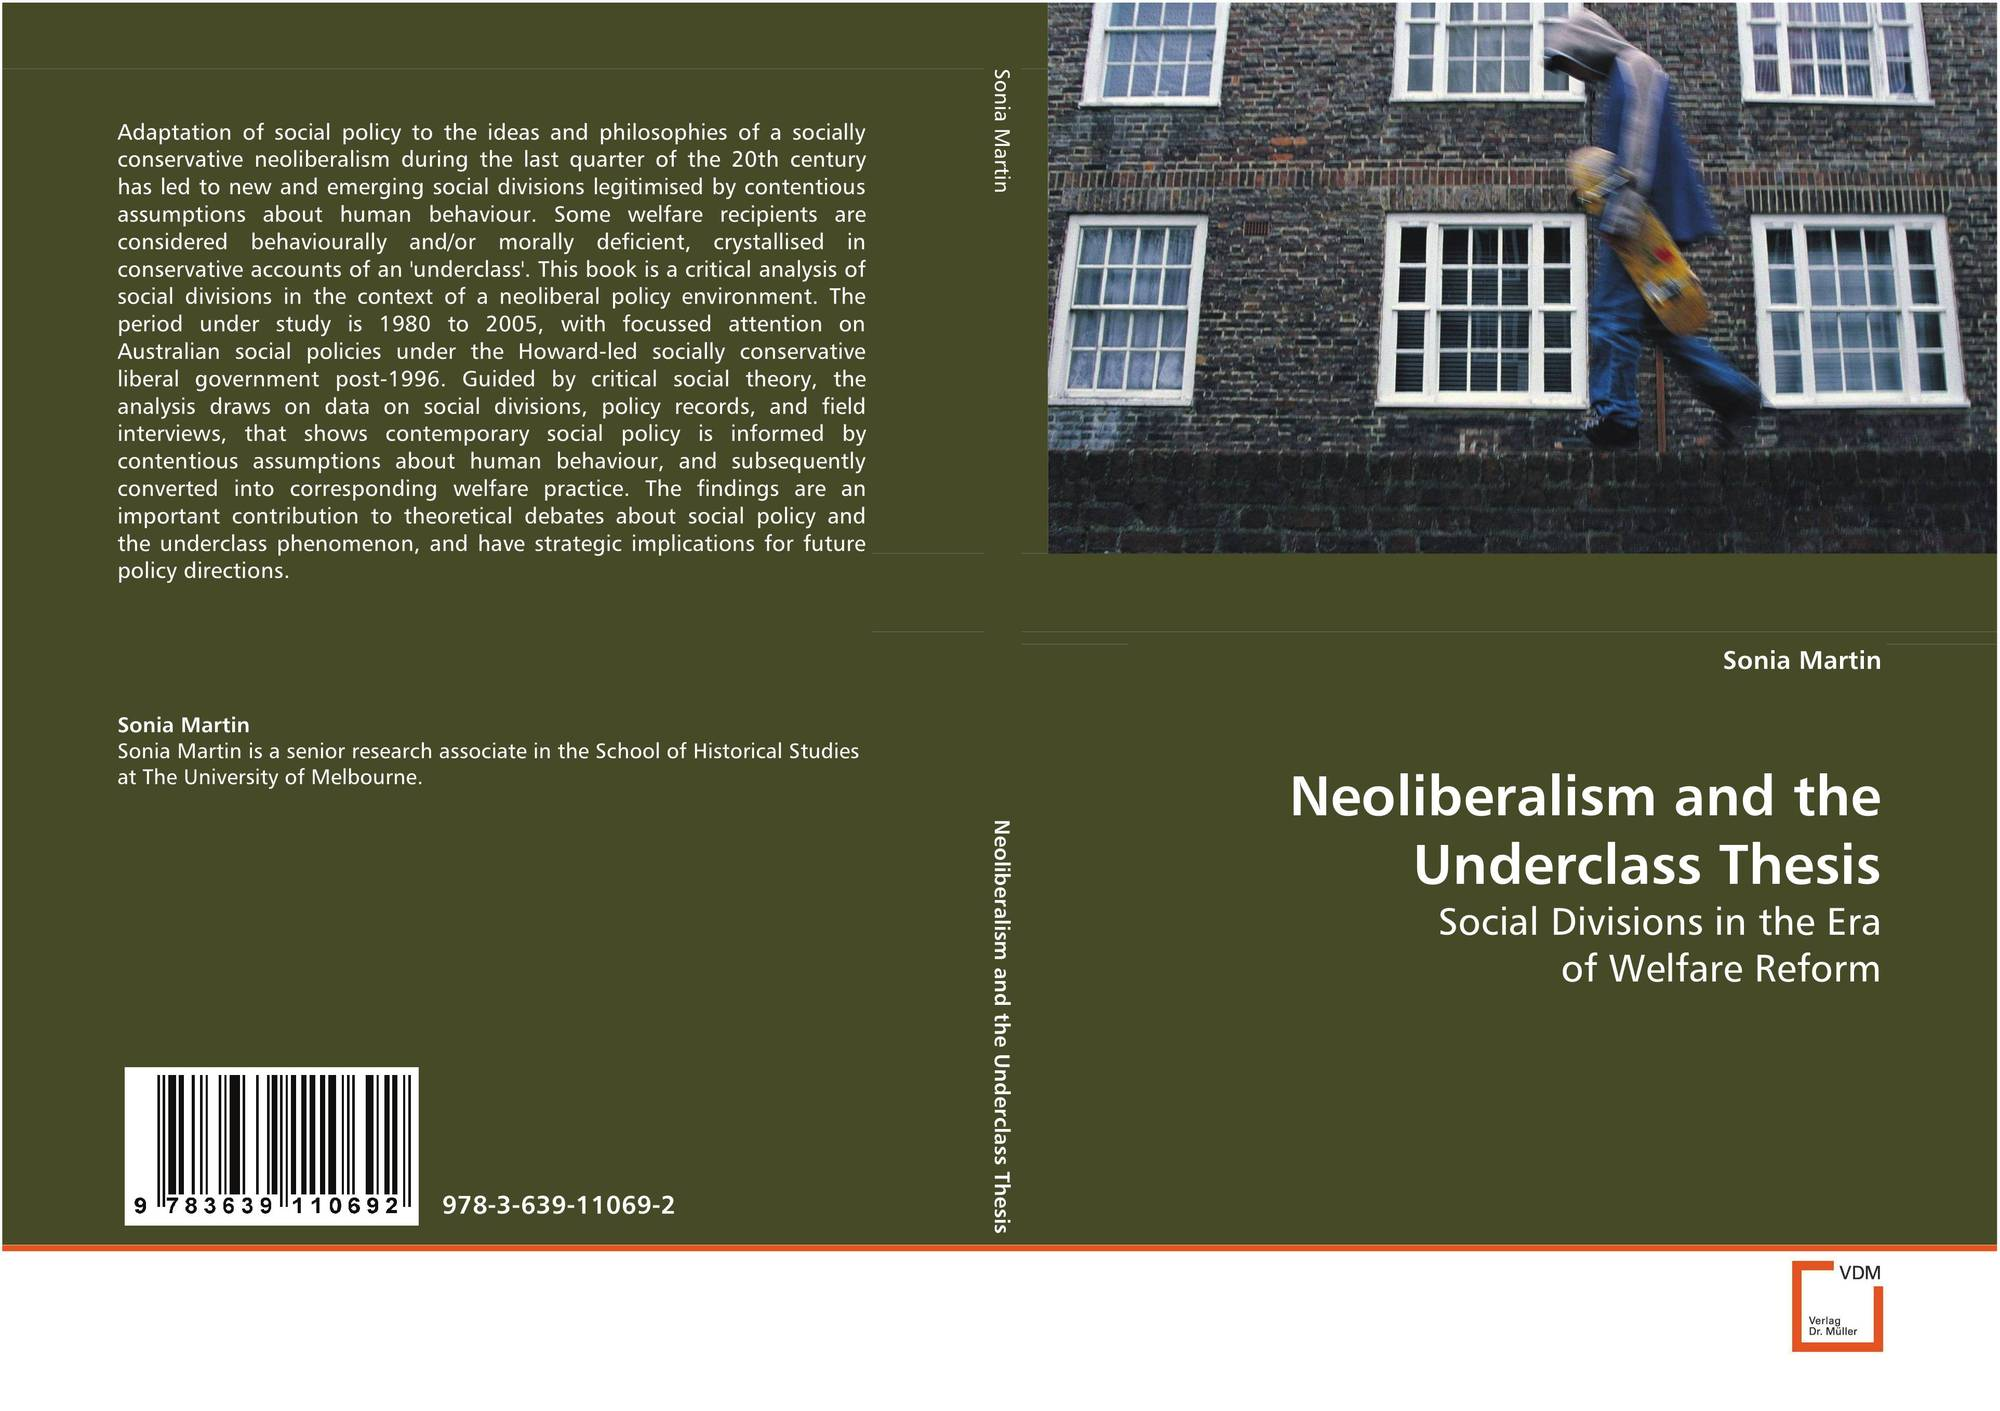 underclass thesis Urban decay, urban poor, 2014 - urban poverty: the underclass.